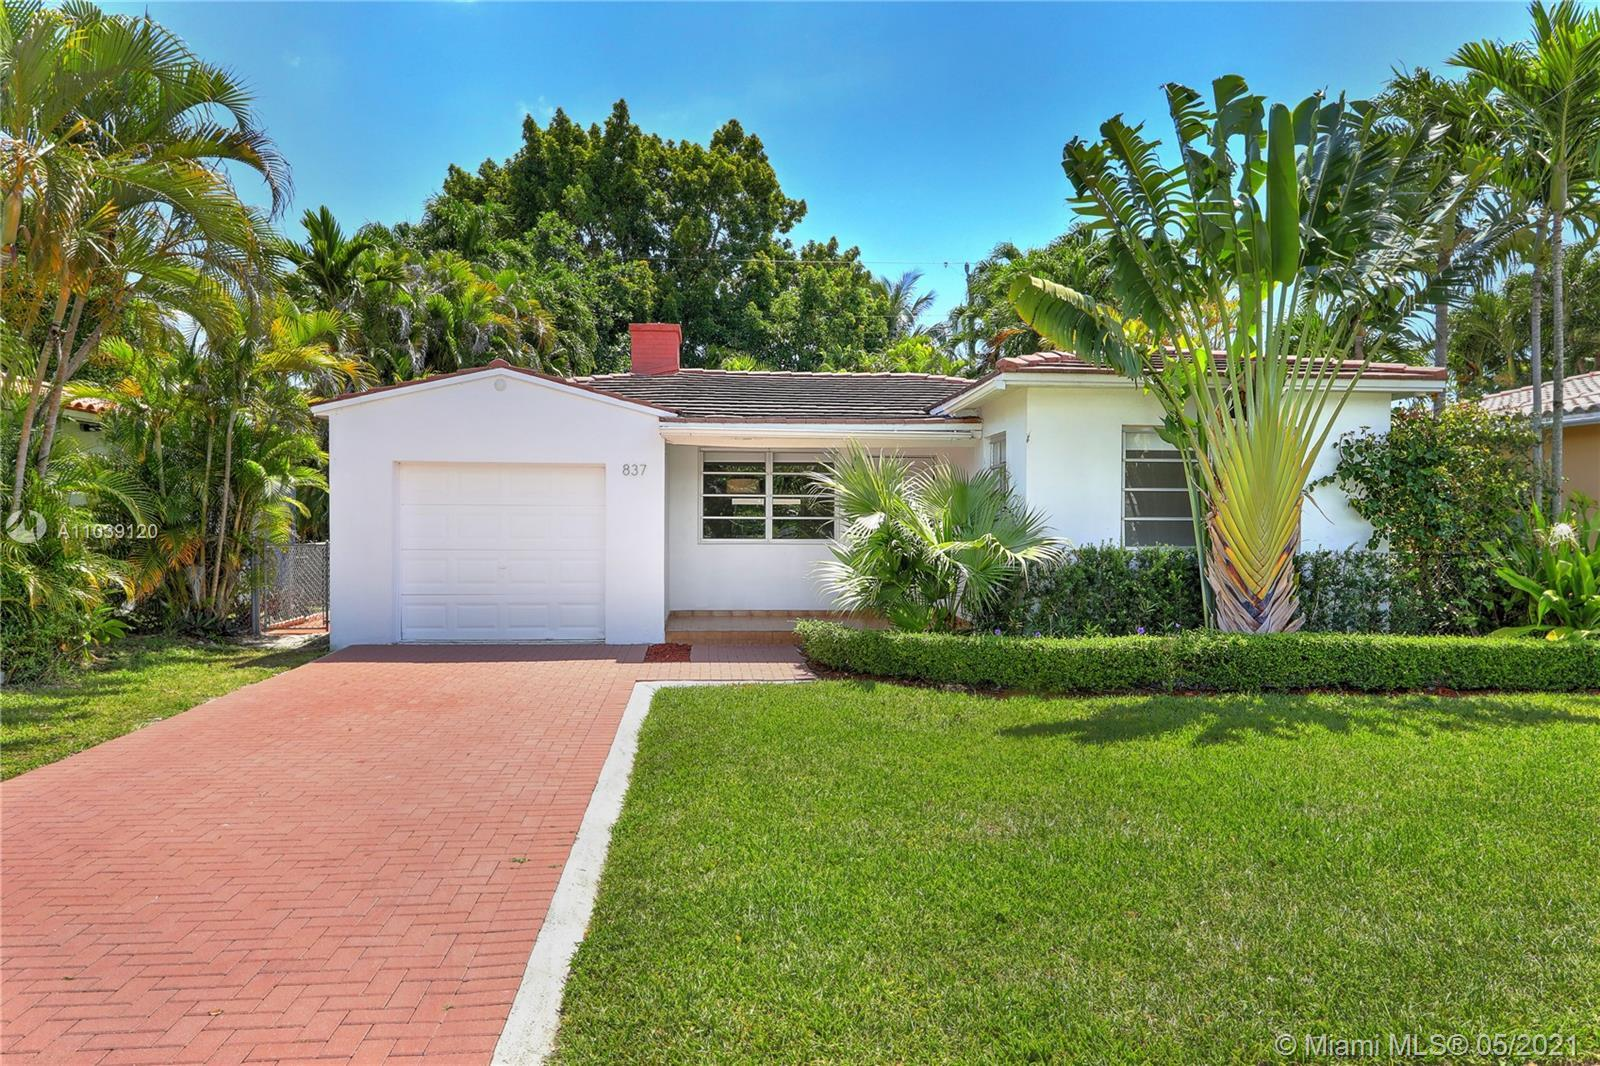 Charming cottage home on a quiet street in the North Gables.  Sit back and relax in the lovely front